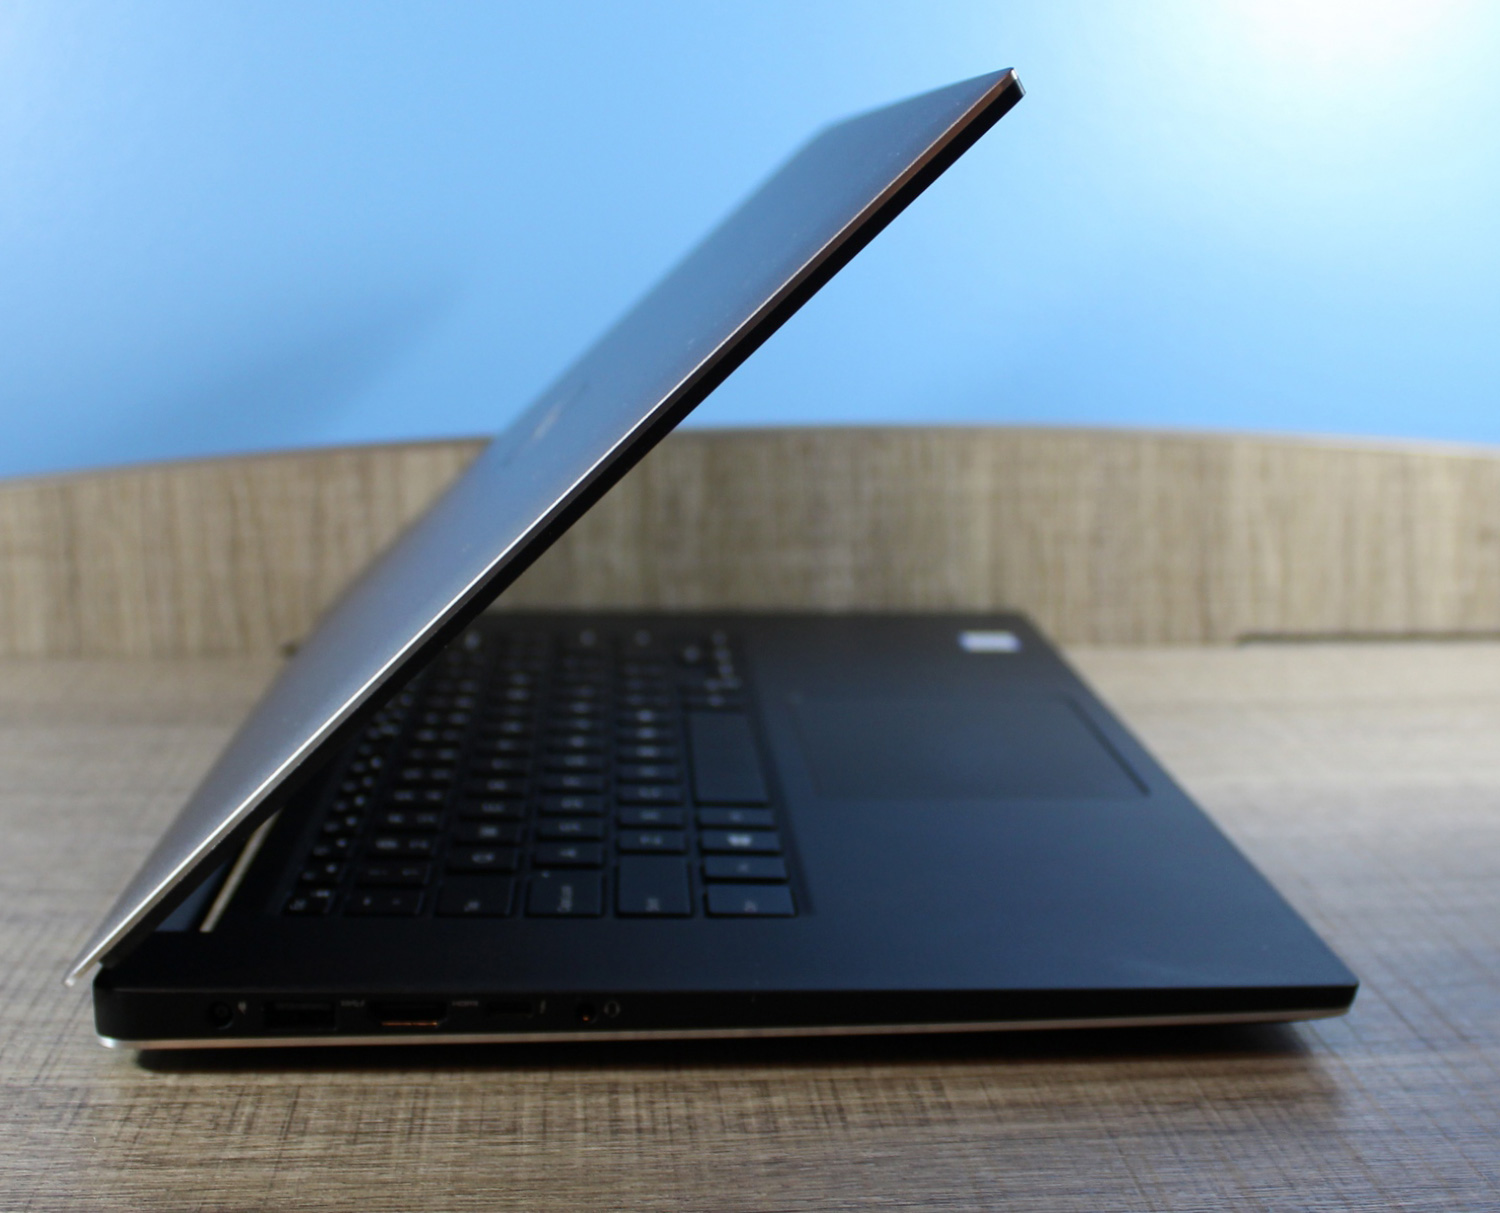 Final Words - The Dell XPS 15 9550 Review: Infinity Edge